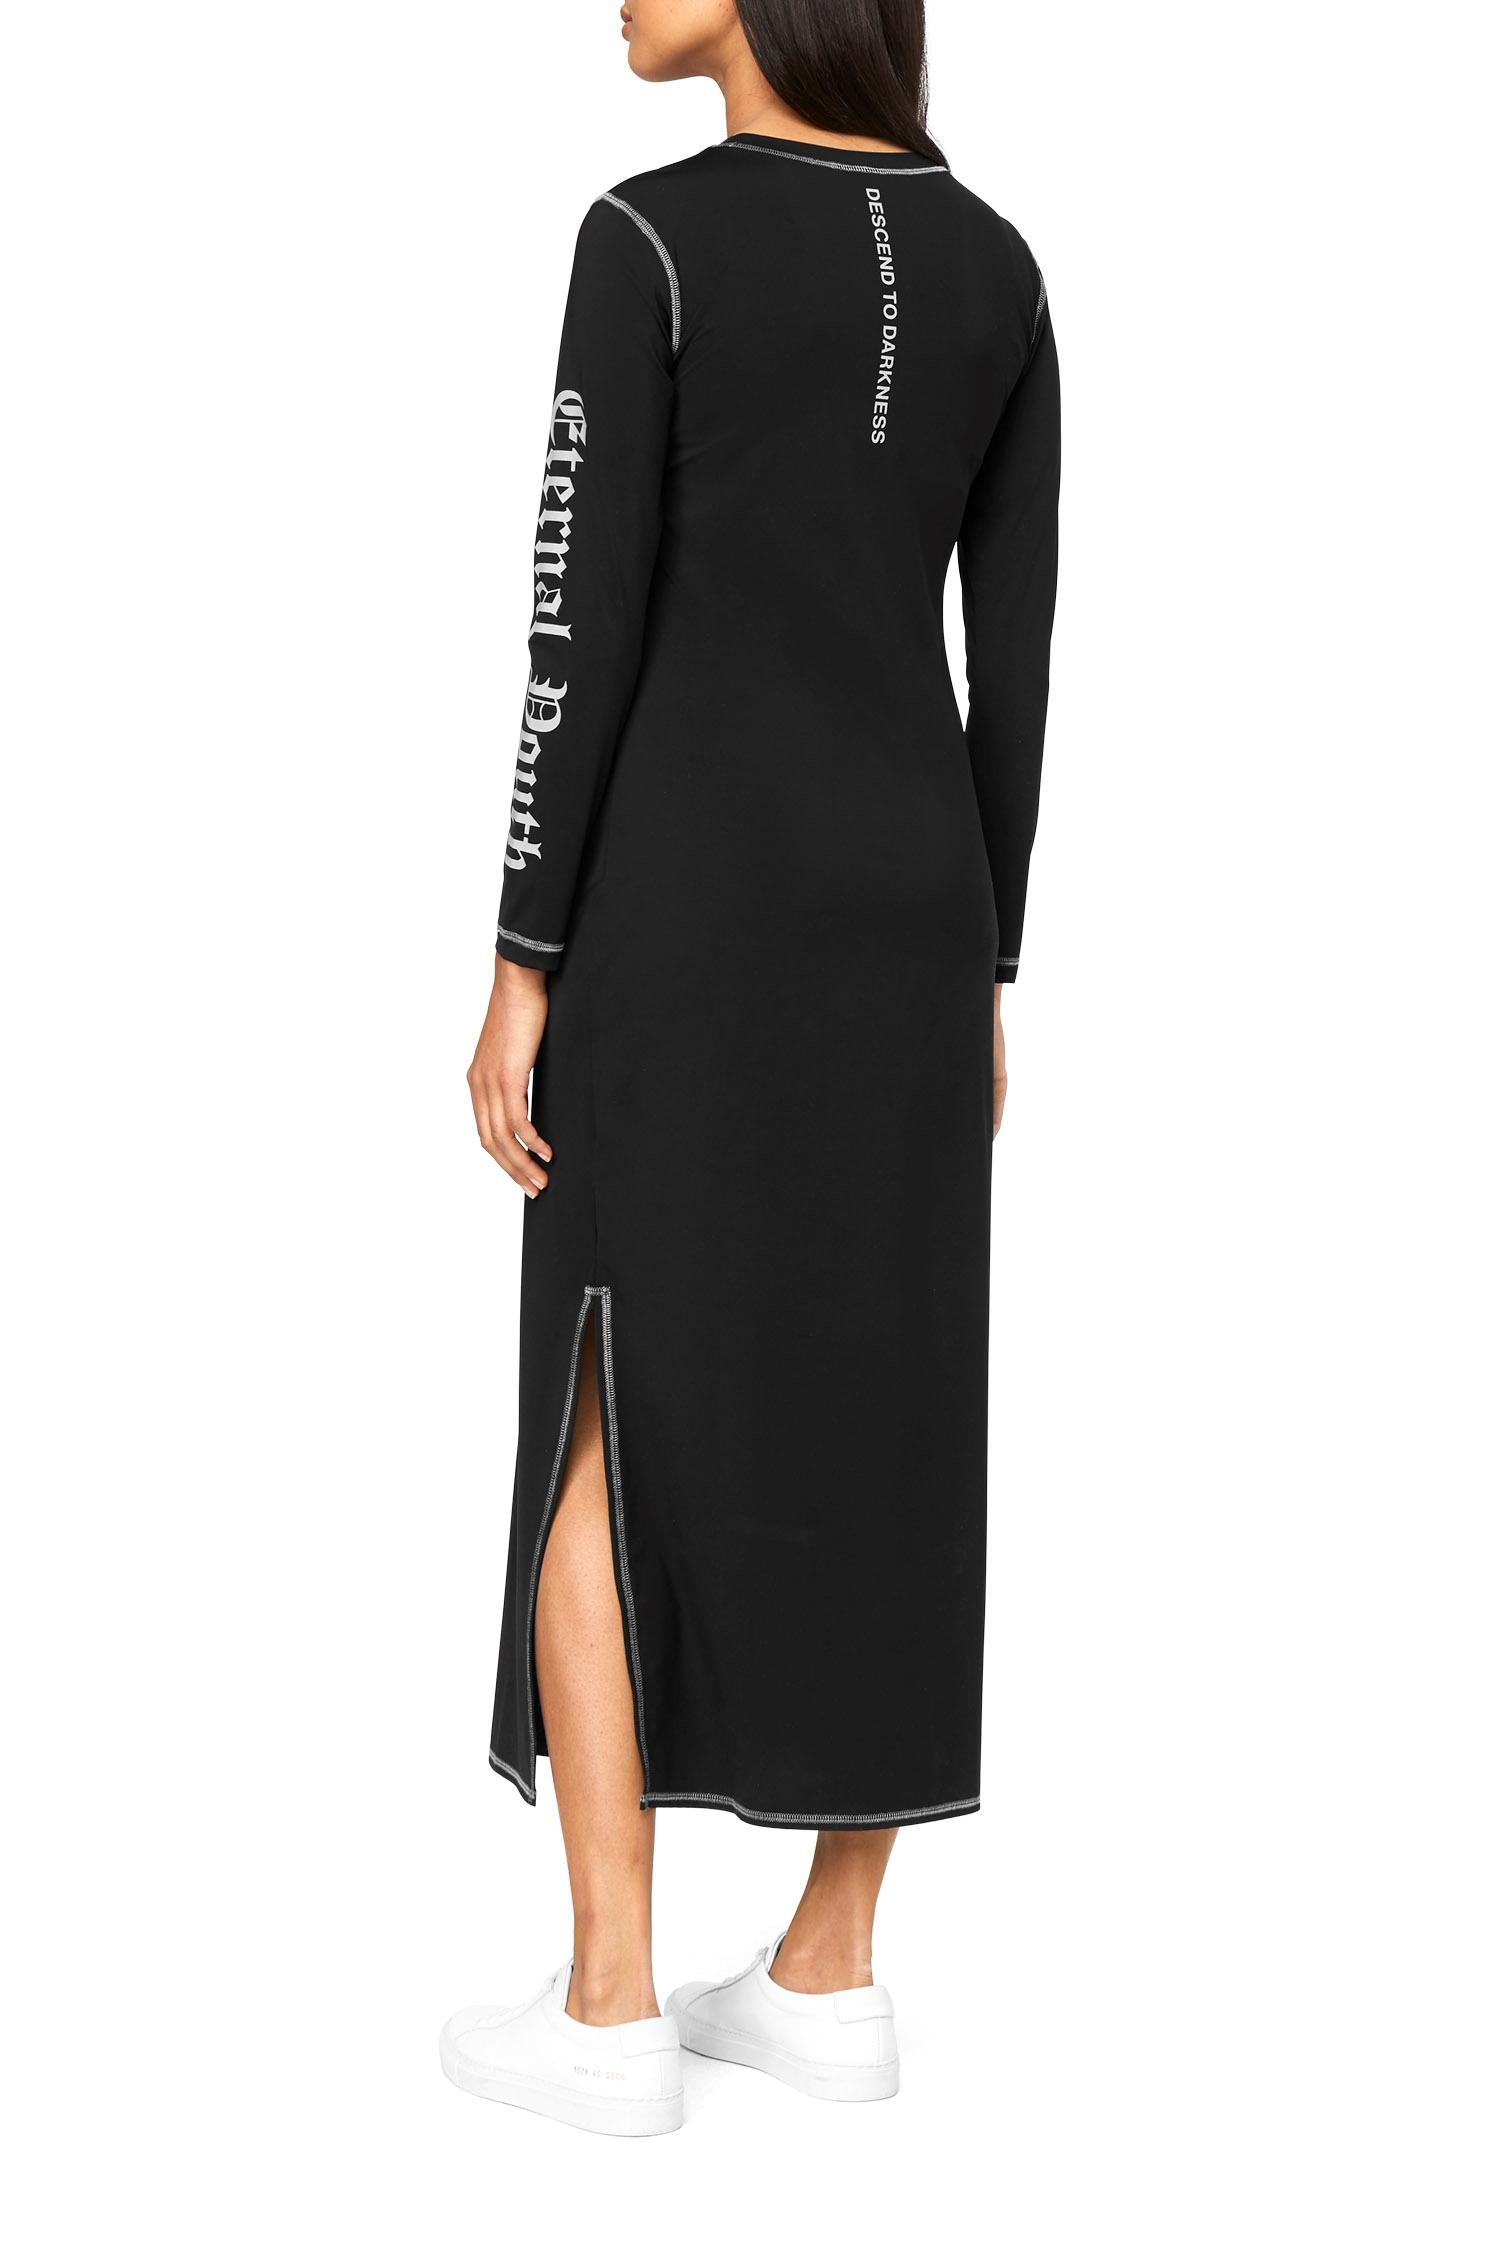 Clearance Online Fake Weekday Reflective Dress - Black Genuine Discount Visa Payment E4myco